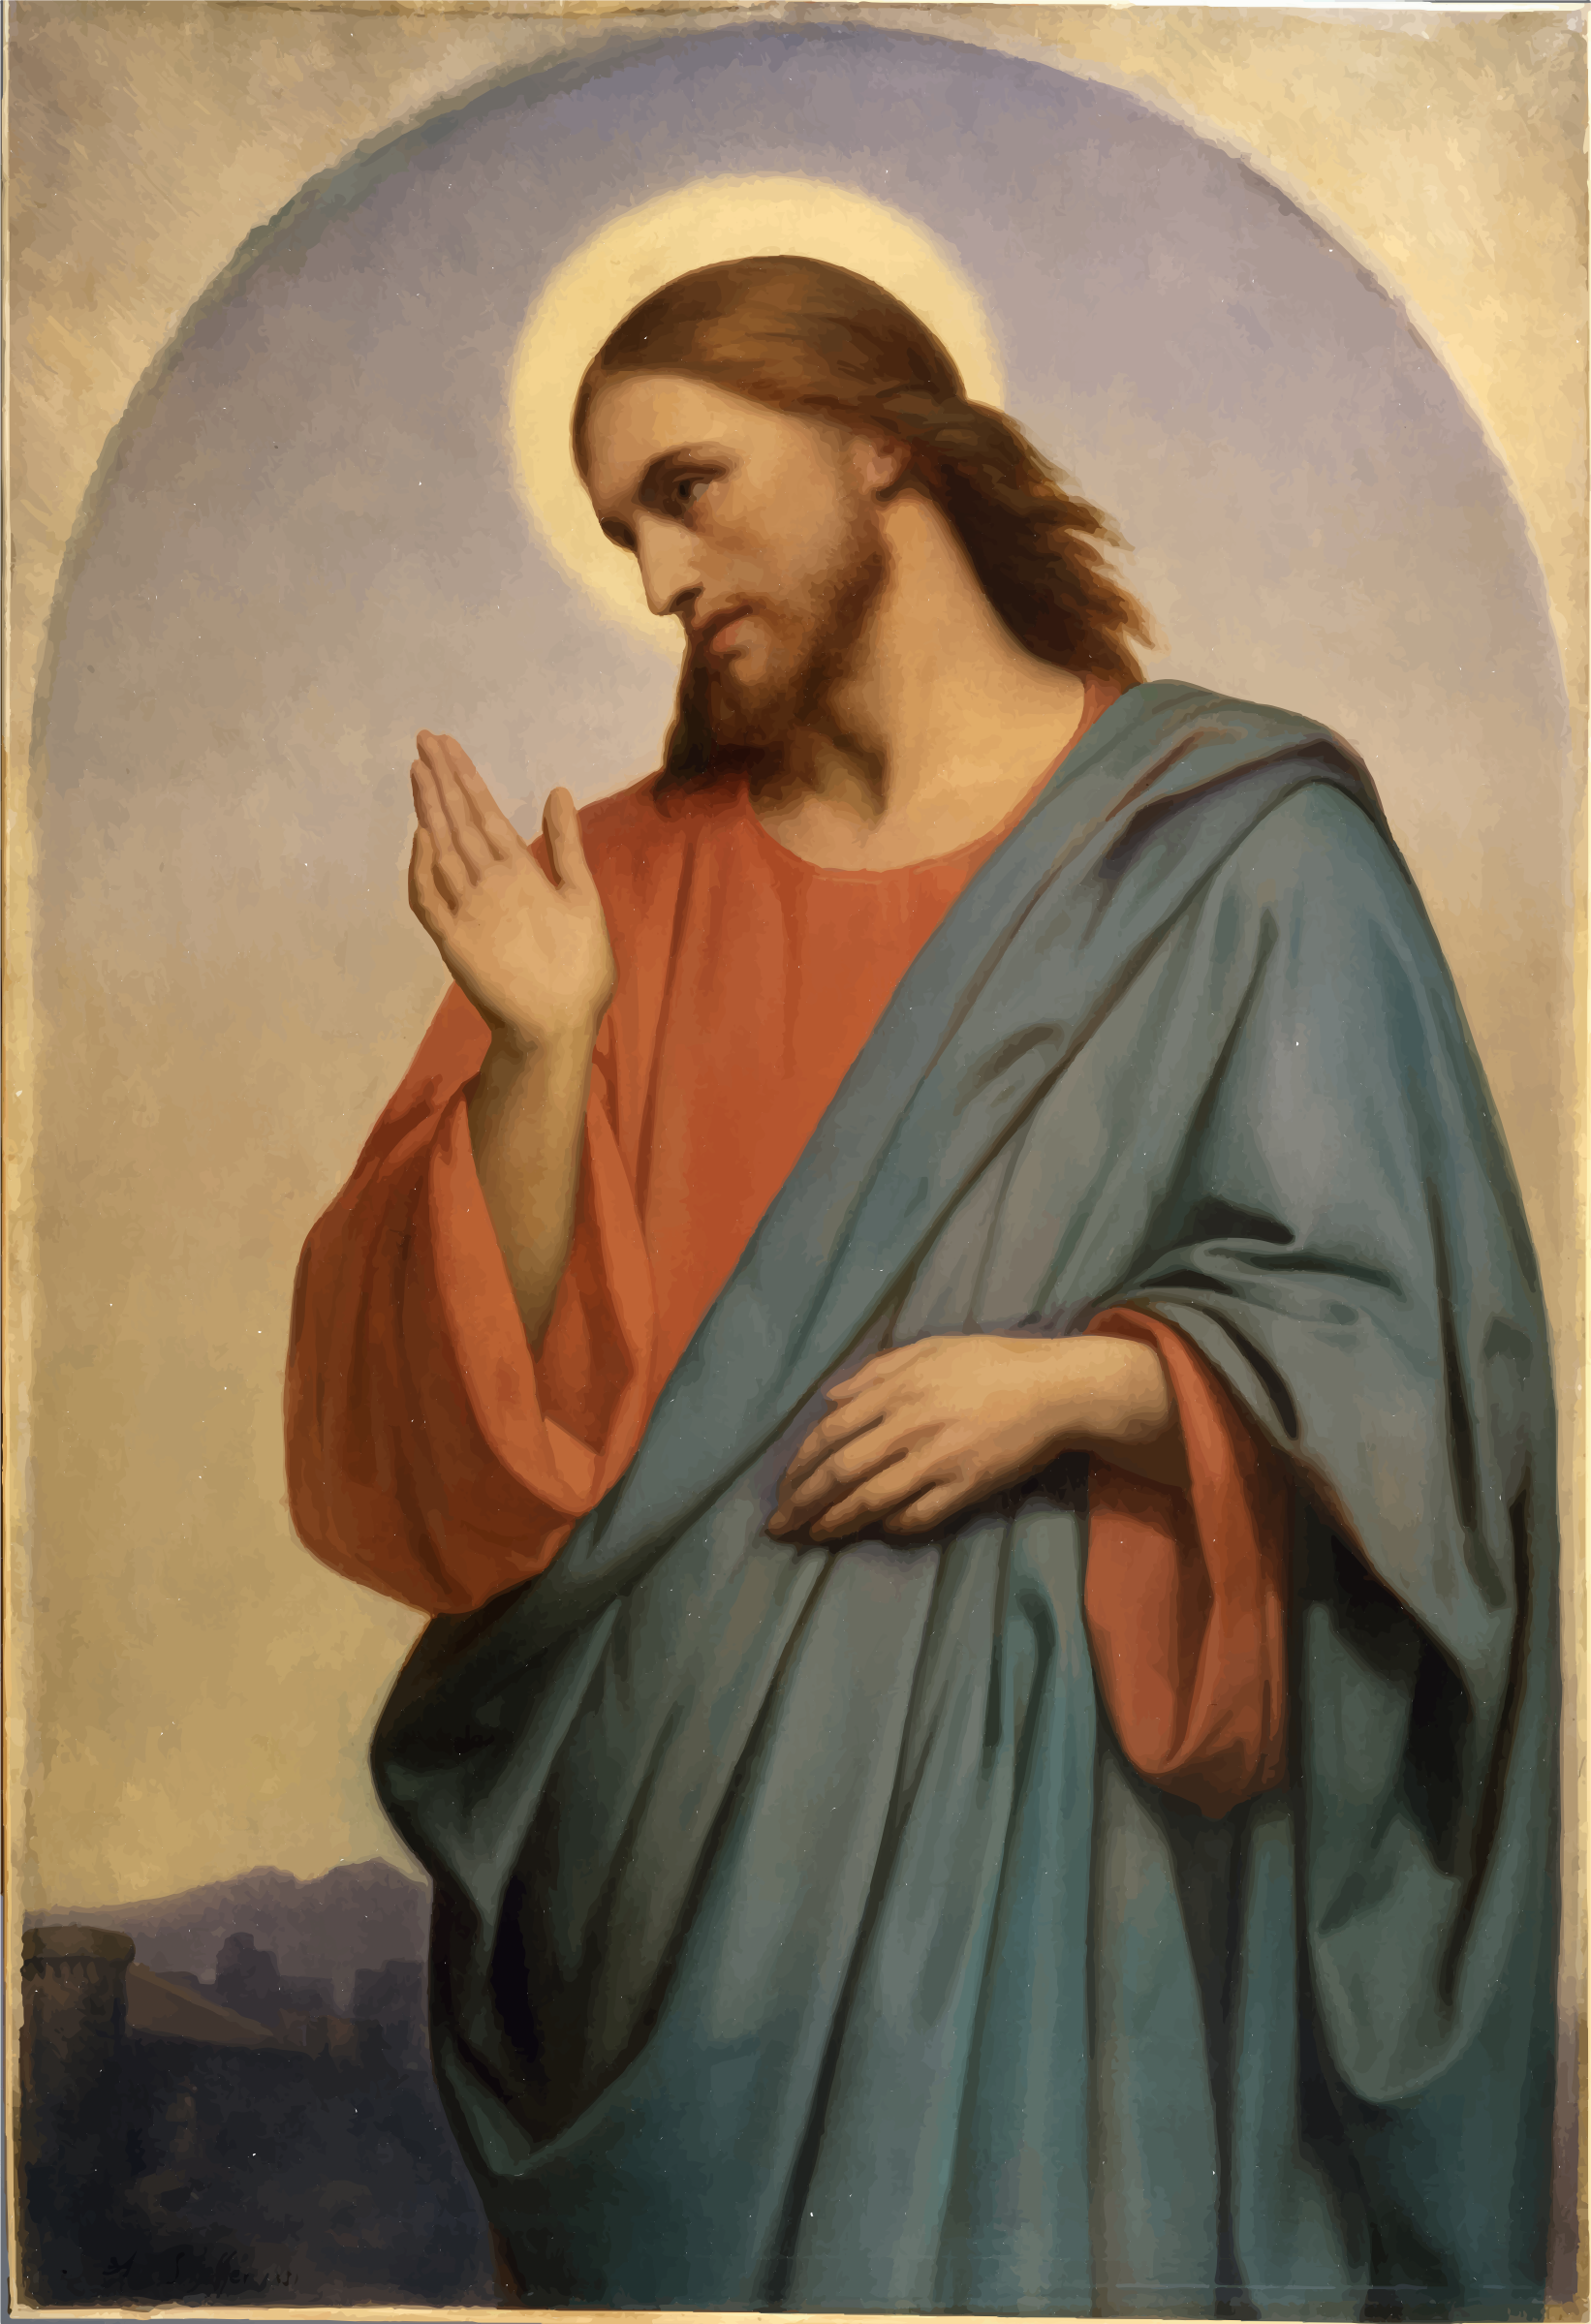 And Scheffer Art Christ Artist Ary Museum PNG Image